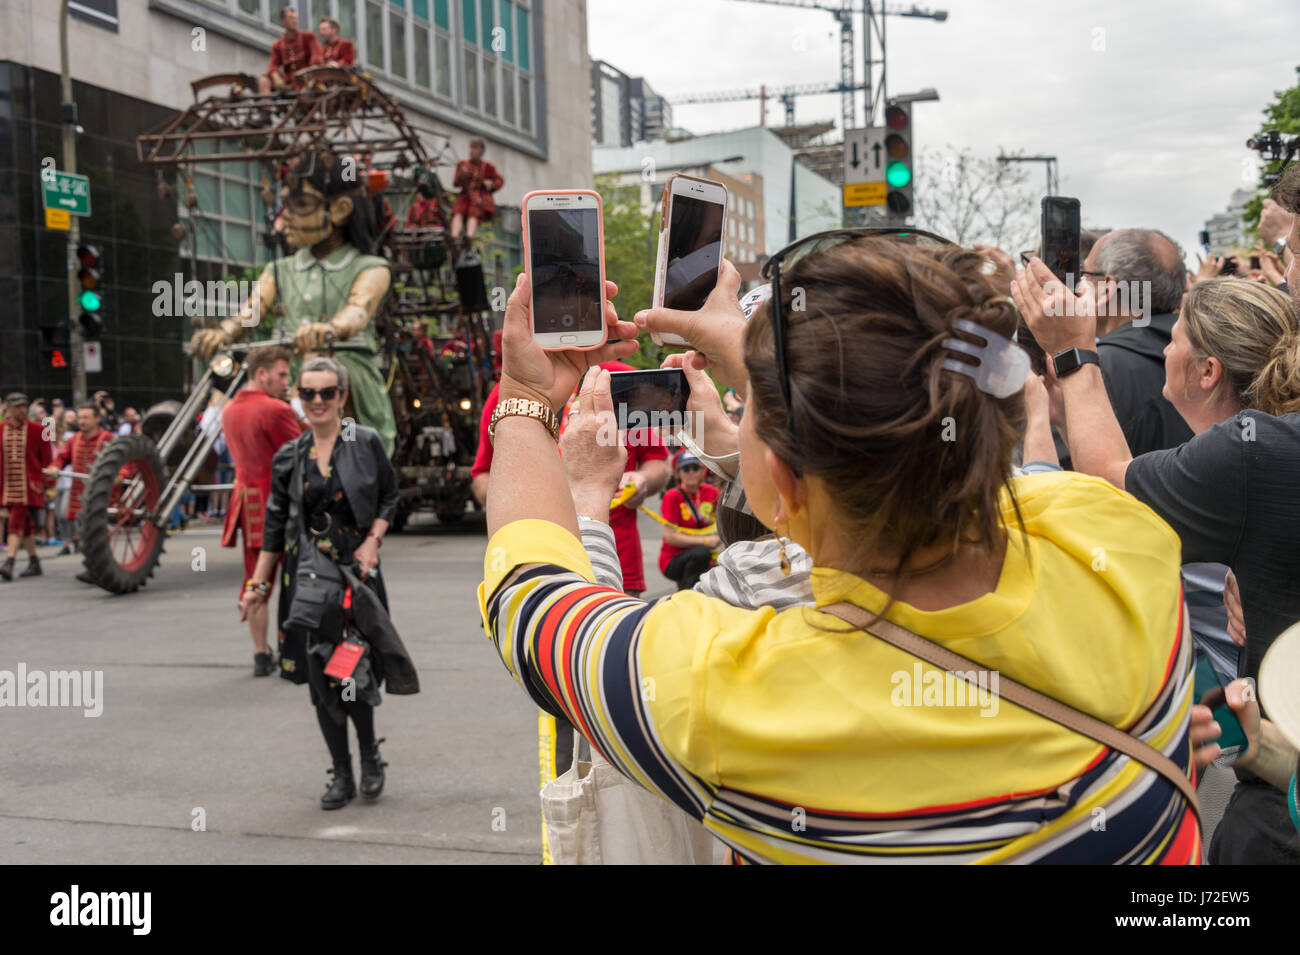 Montreal, CA - 21 May 2017: Woman filming Royal de Luxe Giants show with two cellphones - Stock Image